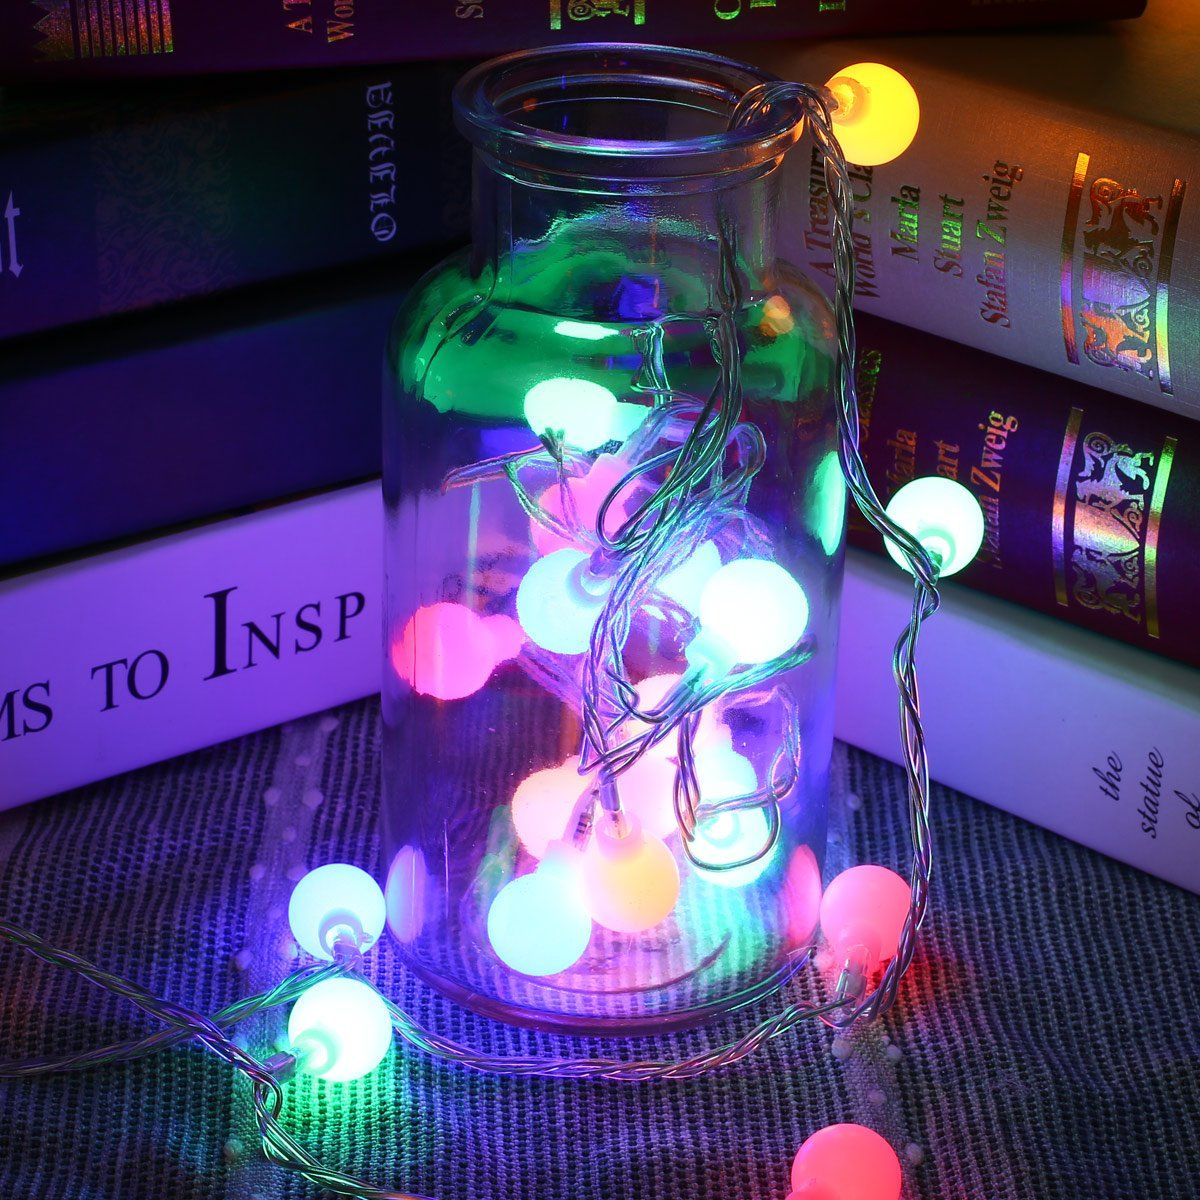 Le Led String Lights Battery Ed 16 4ft 50 Colored Globe 8 Modes Lighting With Timer Fairy Light Bulb For Garden Patio Party Wedding